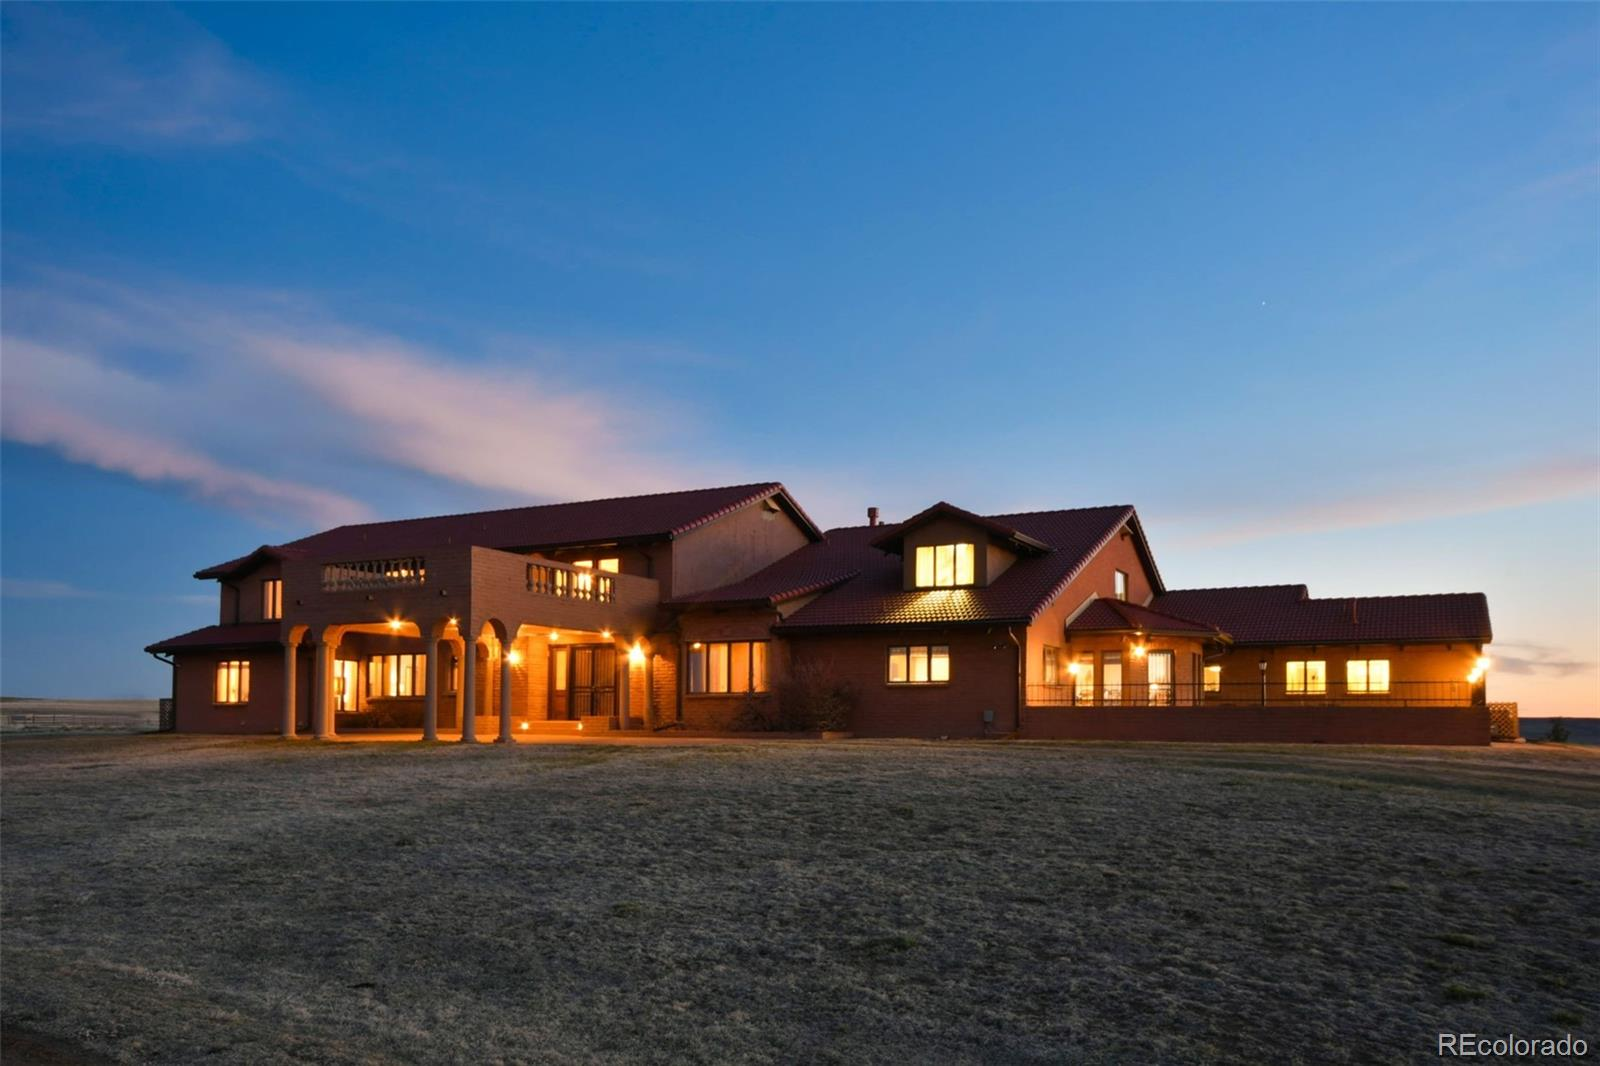 The estate you've been looking for w/ a grand main home, smaller second residence, privacy, & good pastures on almost 2000 acres of prime Colorado ranching property*Sitting on the highest point of the property, you're immediately drawn to the architecture & grandeur of this custom built estate*This home is built solid & all the little details are there*Just some of the highlights are: An indoor pool; elevator; an 8 column porte-cochere entry; curved staircase; 17' ceilings in the great room w/floor to ceiling windows to watch the amazing sunsets & mountain views; exquisite oak cabinets, built-ins, & crown molding throughout the home made from oak milled on the property; 8' wood paneled sliding doors entering the great room; a stunning wood burning fireplace w/ 6' high mantle; a loft overlooking the great room*Truly an entertainers dream- a wet bar area, an elegant spacious formal dining room, a kitchen which boasts double ovens, a 6-burner stove, 2 pantries, eating area & an additional breakfast nook w/beamed ceilings*Several private court yards, a green house & separate fenced garden area*Large bedrooms w/private baths & walk-in closets*A soundproof bedroom in the massive finished basement*Mud room w/hat & boot racks*Laundry room w/utility sink, cabinets & built in ironing board*An oversized 4 car attached finished garage w/4 dog kennels, dog washing station, & 2 gas heaters*Sitting on 1,966.84 of fenced pasture, this land can be used in a multitude of ways*Most recently used as a successful cattle ranch*Enjoy hunting deer, antelope, & game birds on the property as well*Boasting 6 wells throughout the ranch for watering livestock*The original farm house built in 1943 remains on the property & is currently being rented out*Several additional outbuildings included-another 4 car garage, tool sheds, loafing sheds & piped corrals*This is a beautiful property situated on rolling hills & grasslands* Must see in person to appreciate all the custom details.